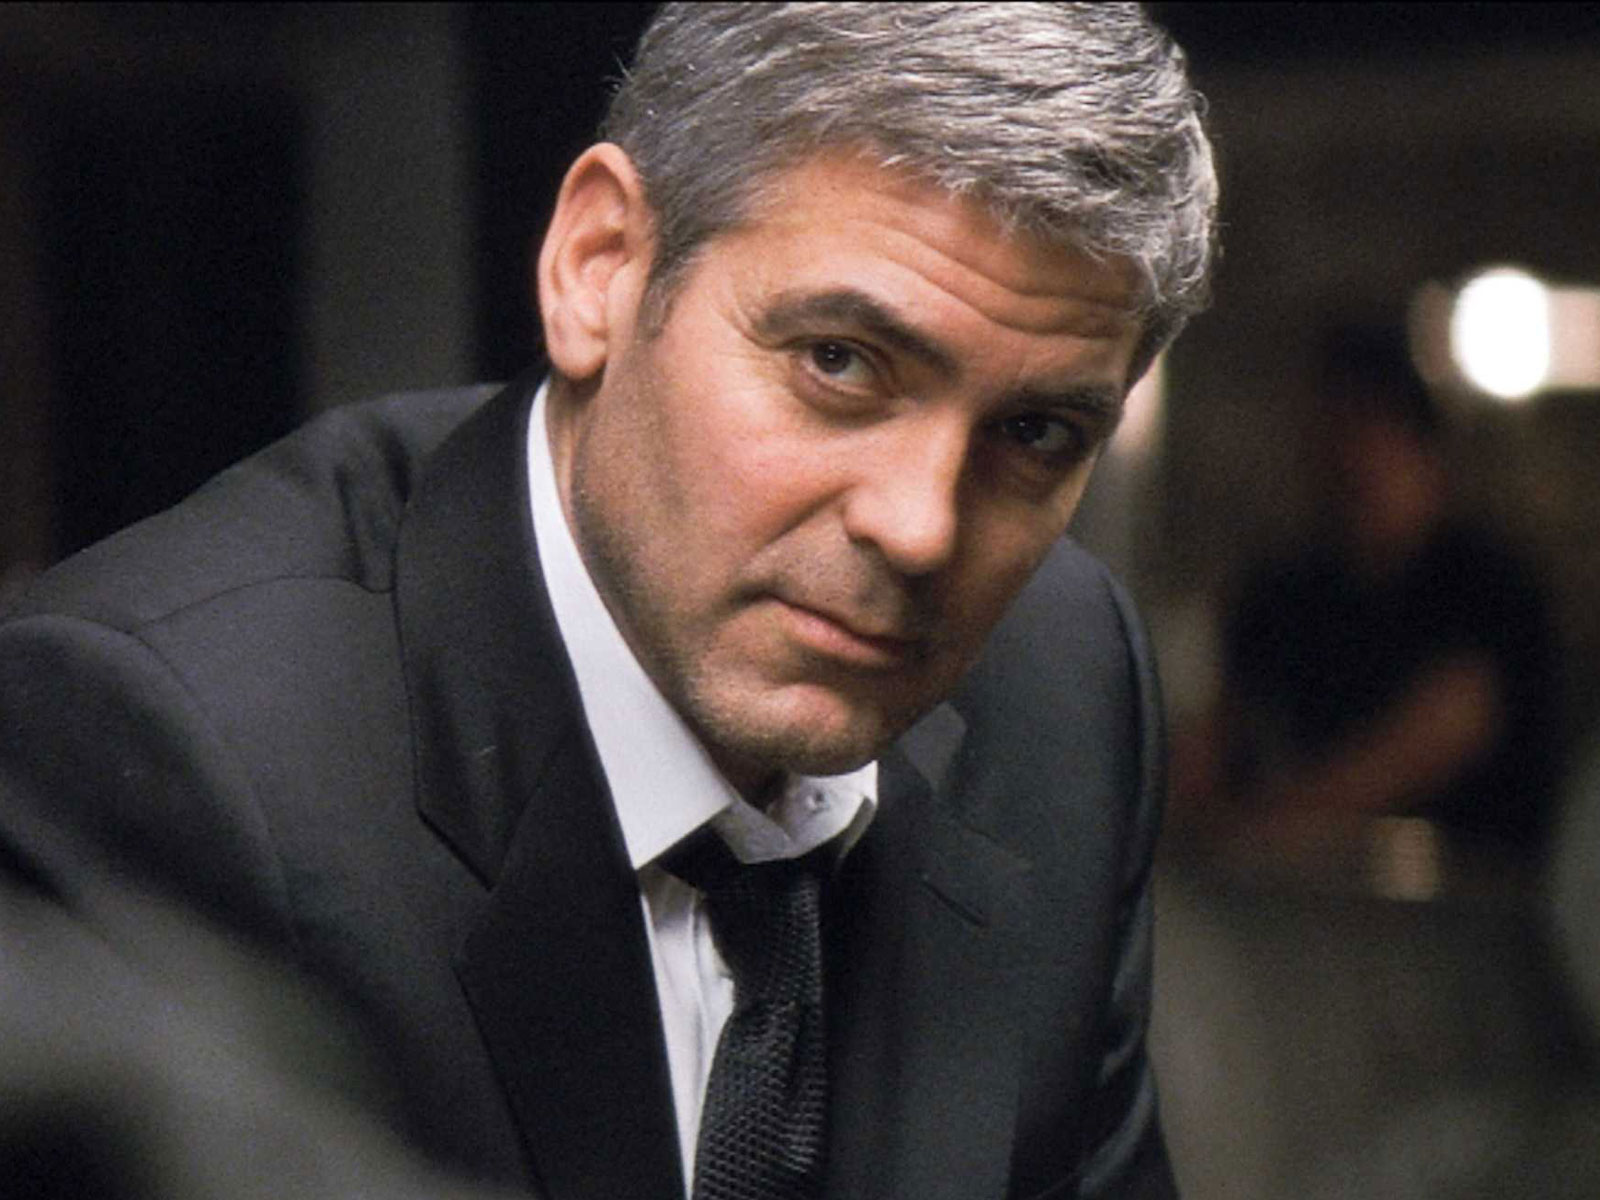 http://www.actors-pictures.com/pictures/george-clooney-30.jpg